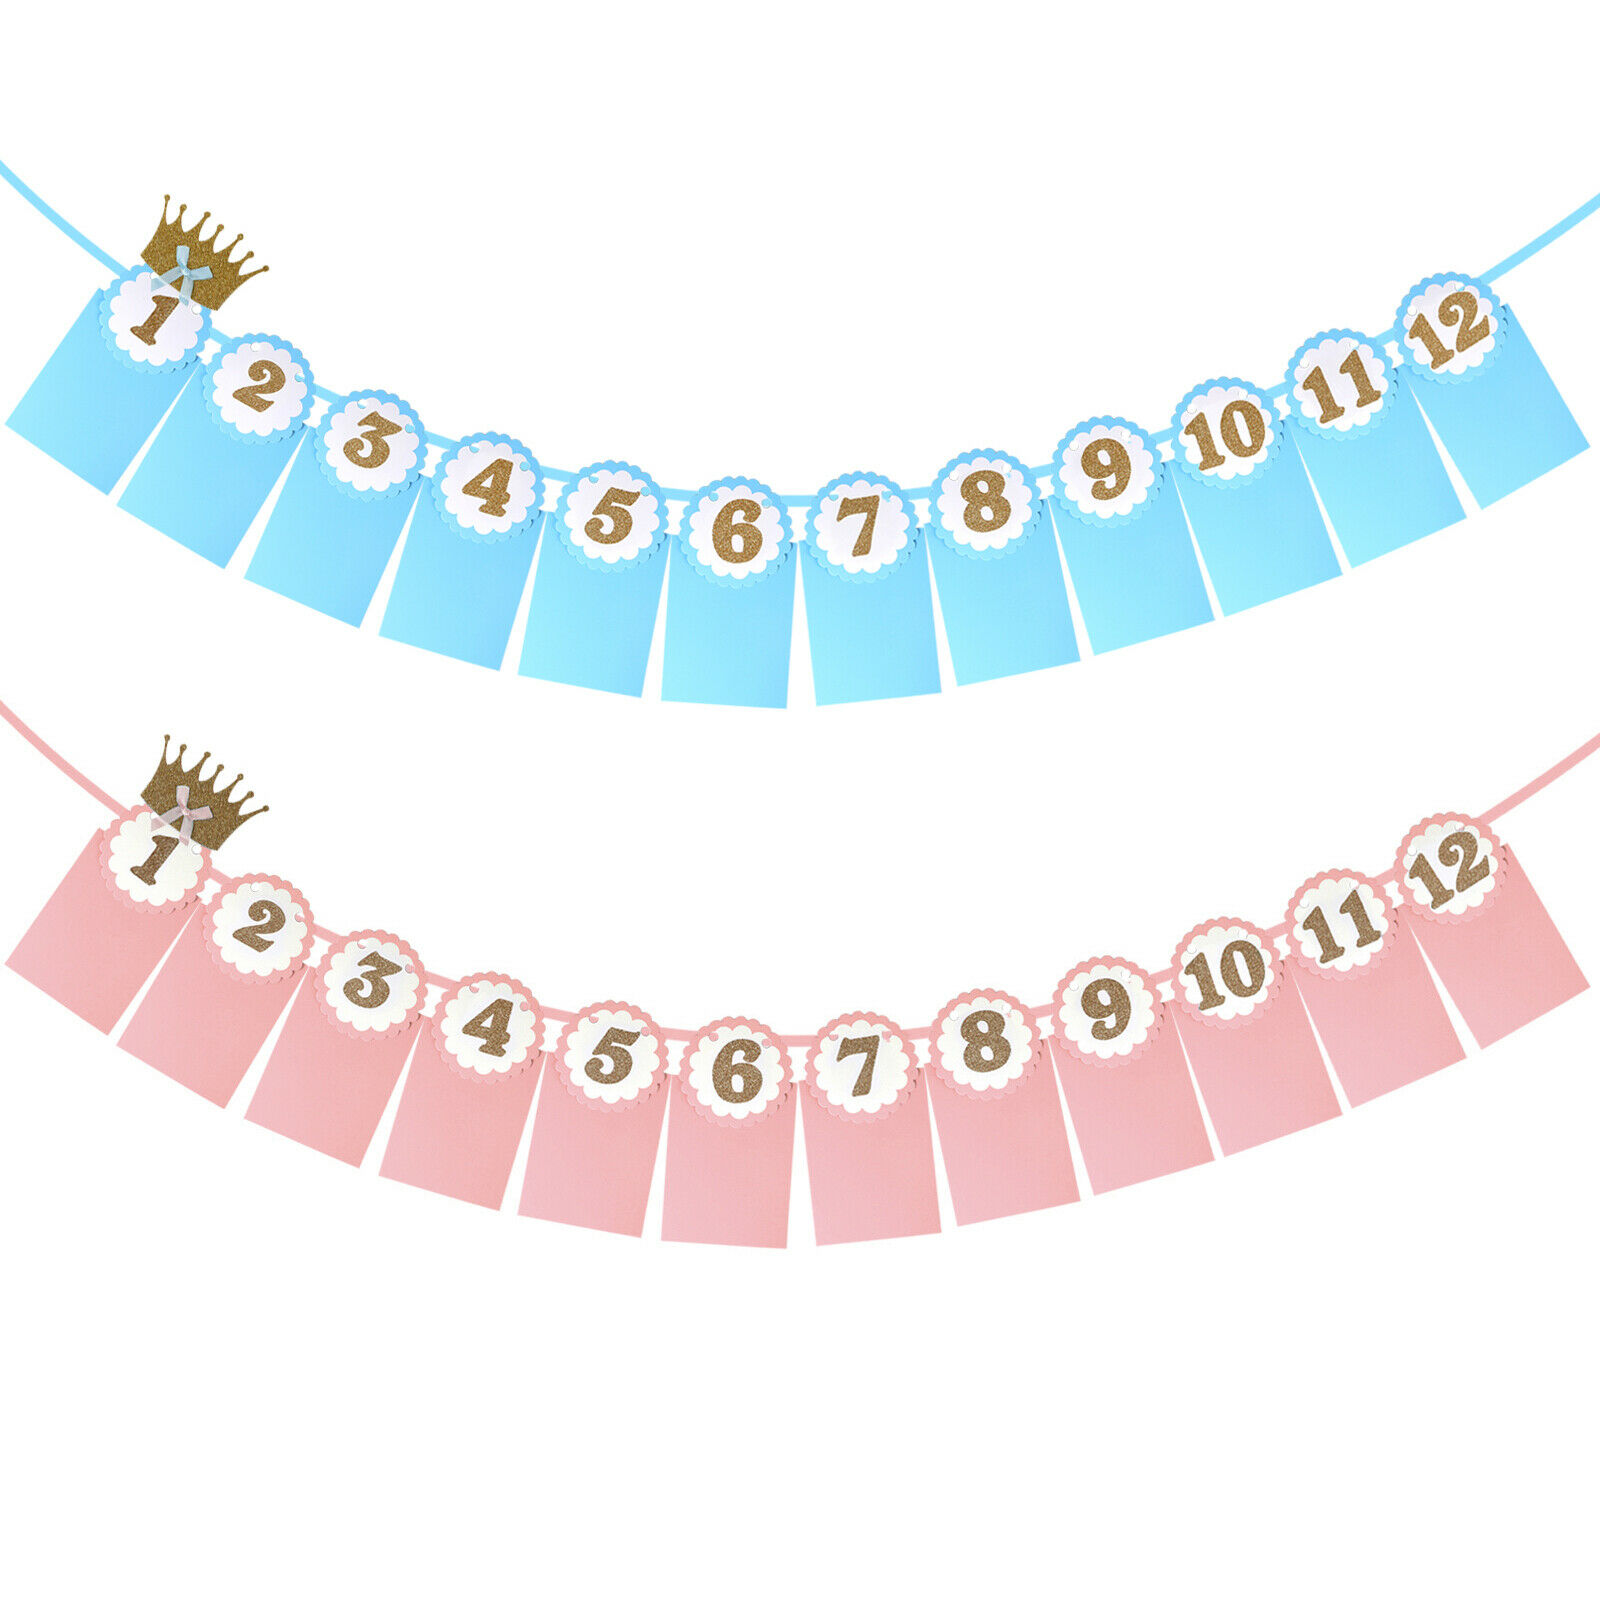 First Year Birthday Party Baby Girl Boy 12 Months Photo Frame Banner 12pcs Set For Sale Online Ebay